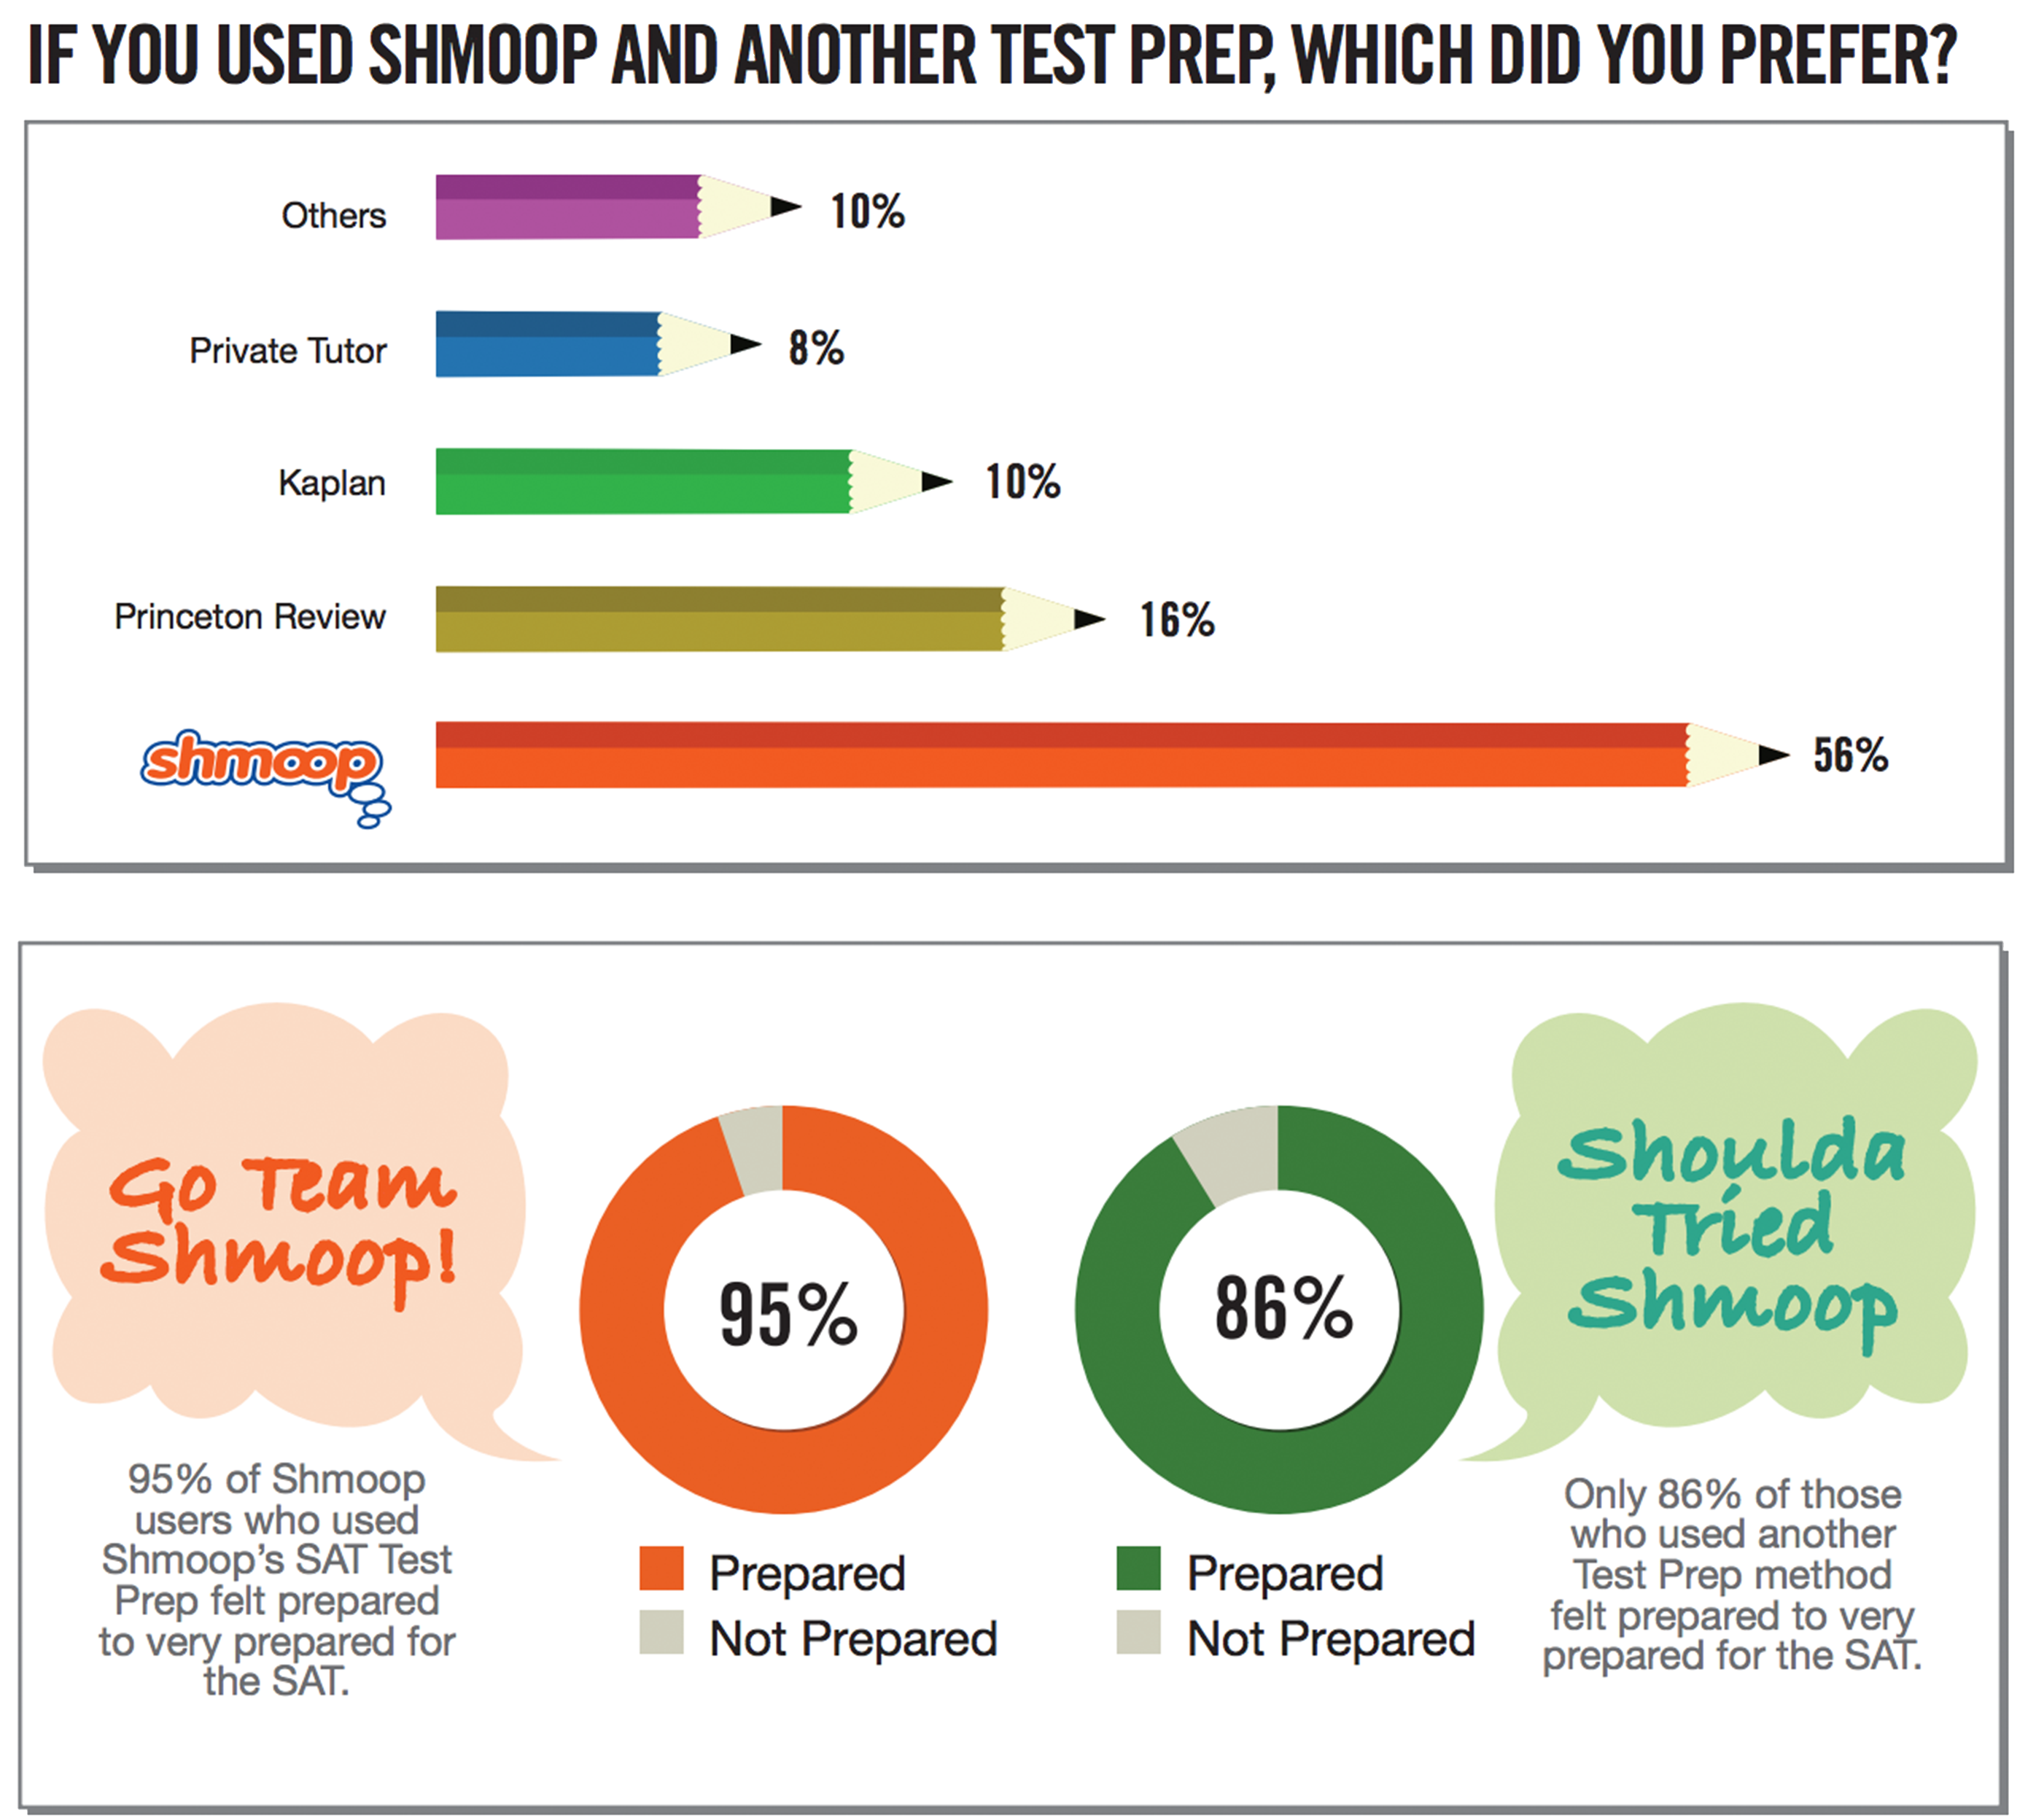 SAT prep survey results image